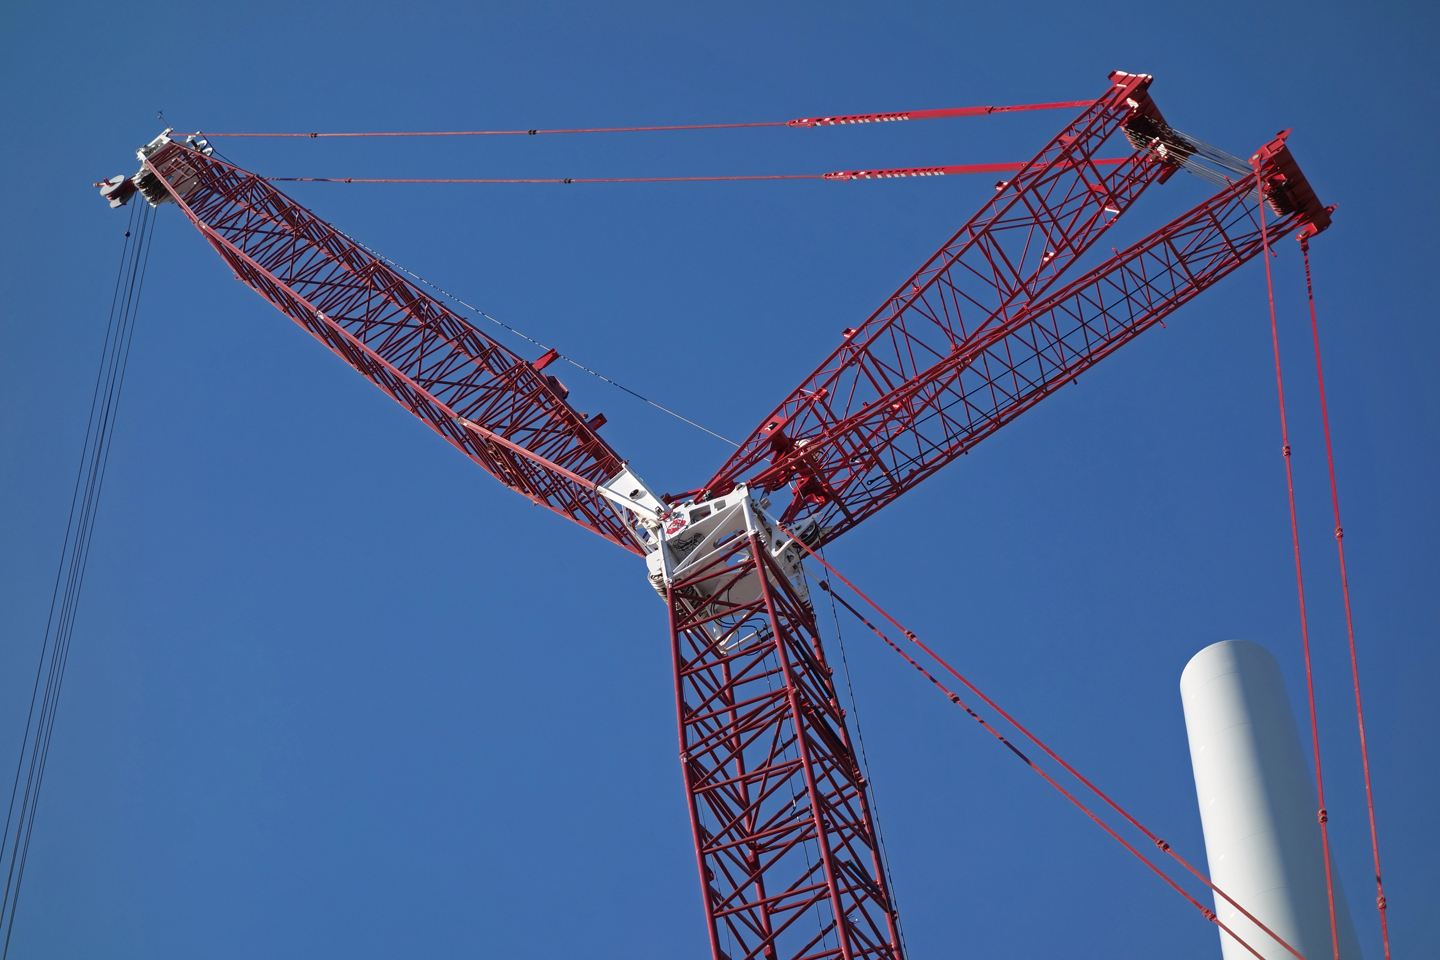 Varian wind turbine installation 11-1-12 (2a)